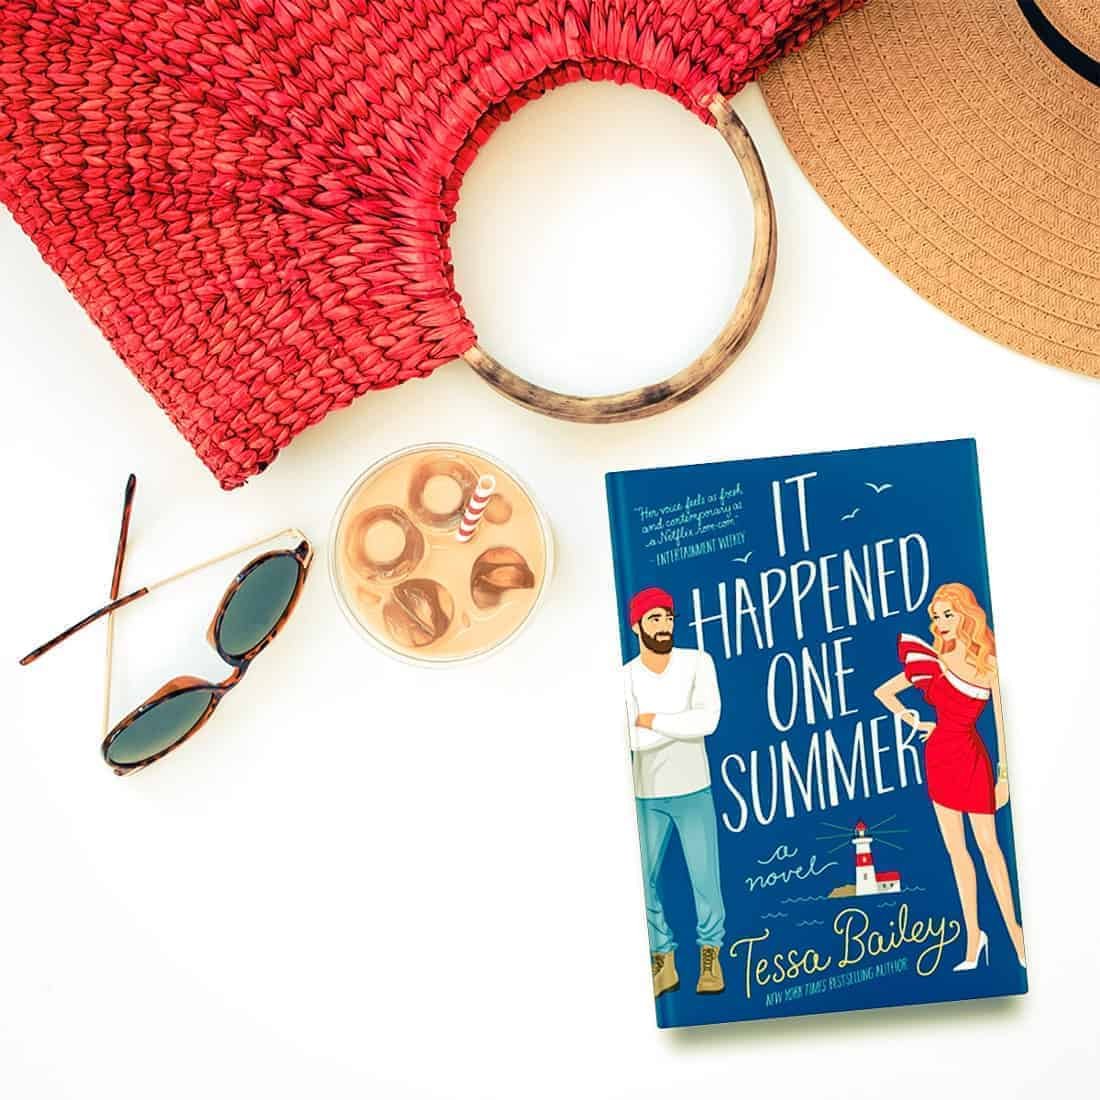 It Happened One Summer by Tessa Bailey is a fun, sweet, steamy, and swoony opposites attract romance featuring a grumpy fisherman and a pampered socialite.